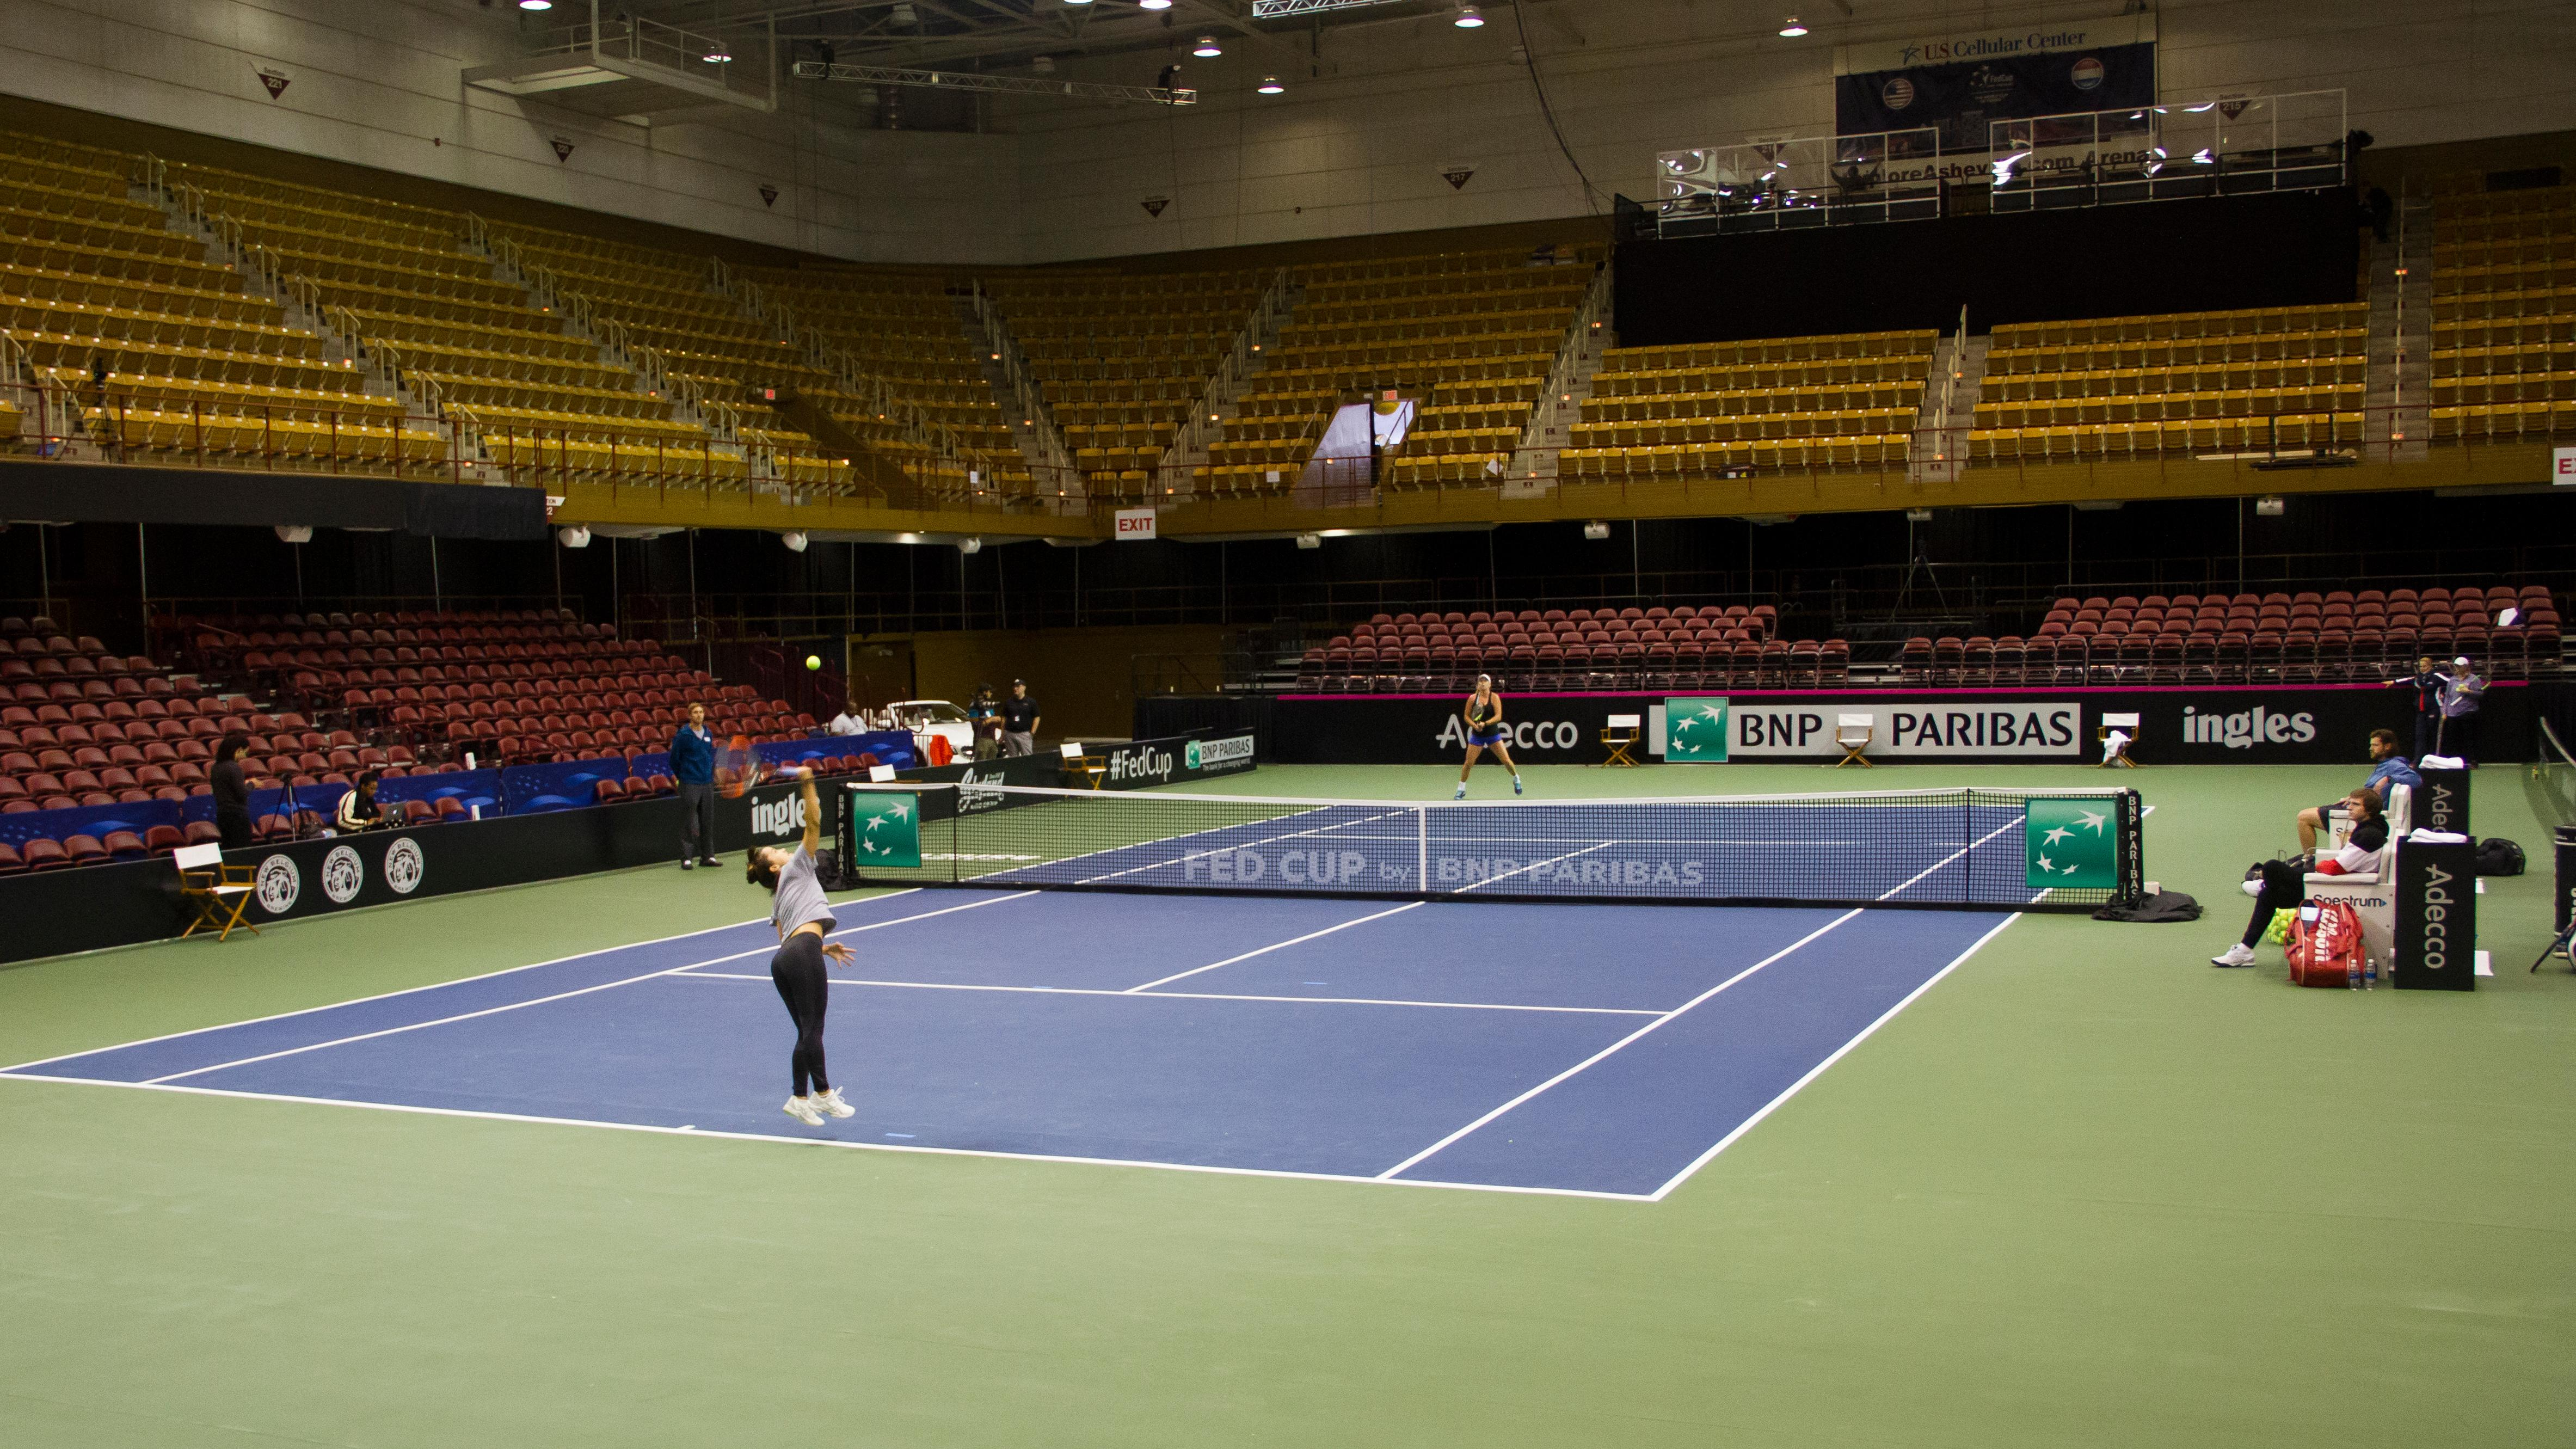 Lauren Davis and CoCo Vandeweghe practice at the US Cellular Center on Feb. 7, 2018, ahead of the Fed Cup. (Photo credit: WLOS Staff)